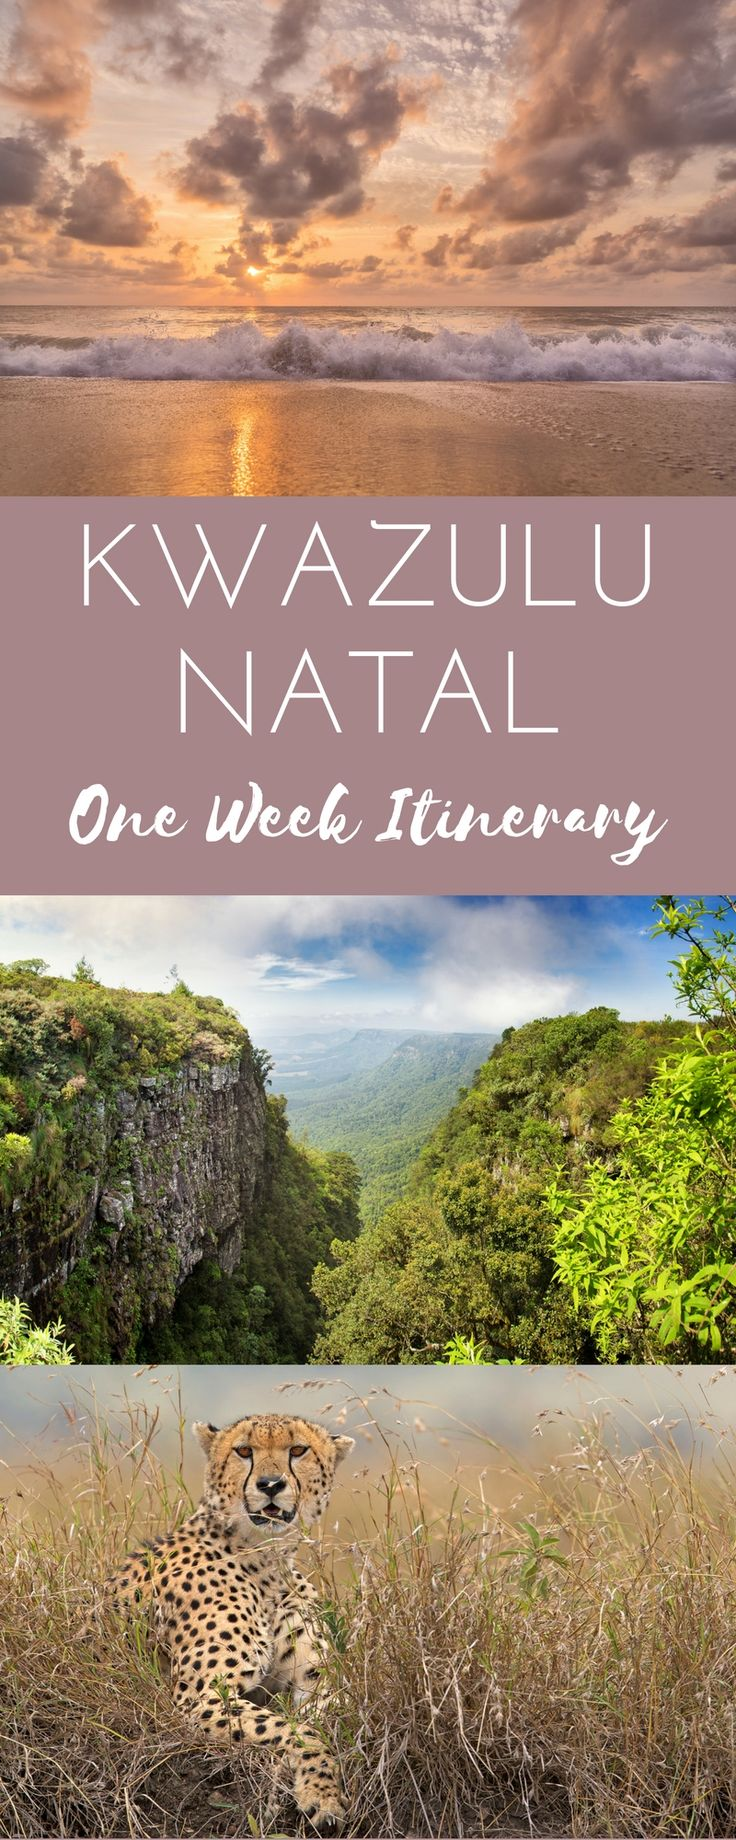 One Week Itinerary for KwaZulu-Natal. An adjustable seven night (or longer) route through KZN, taking in the Bush, Beaches, Drakensberg Mountains, and Zulu Battlefields...